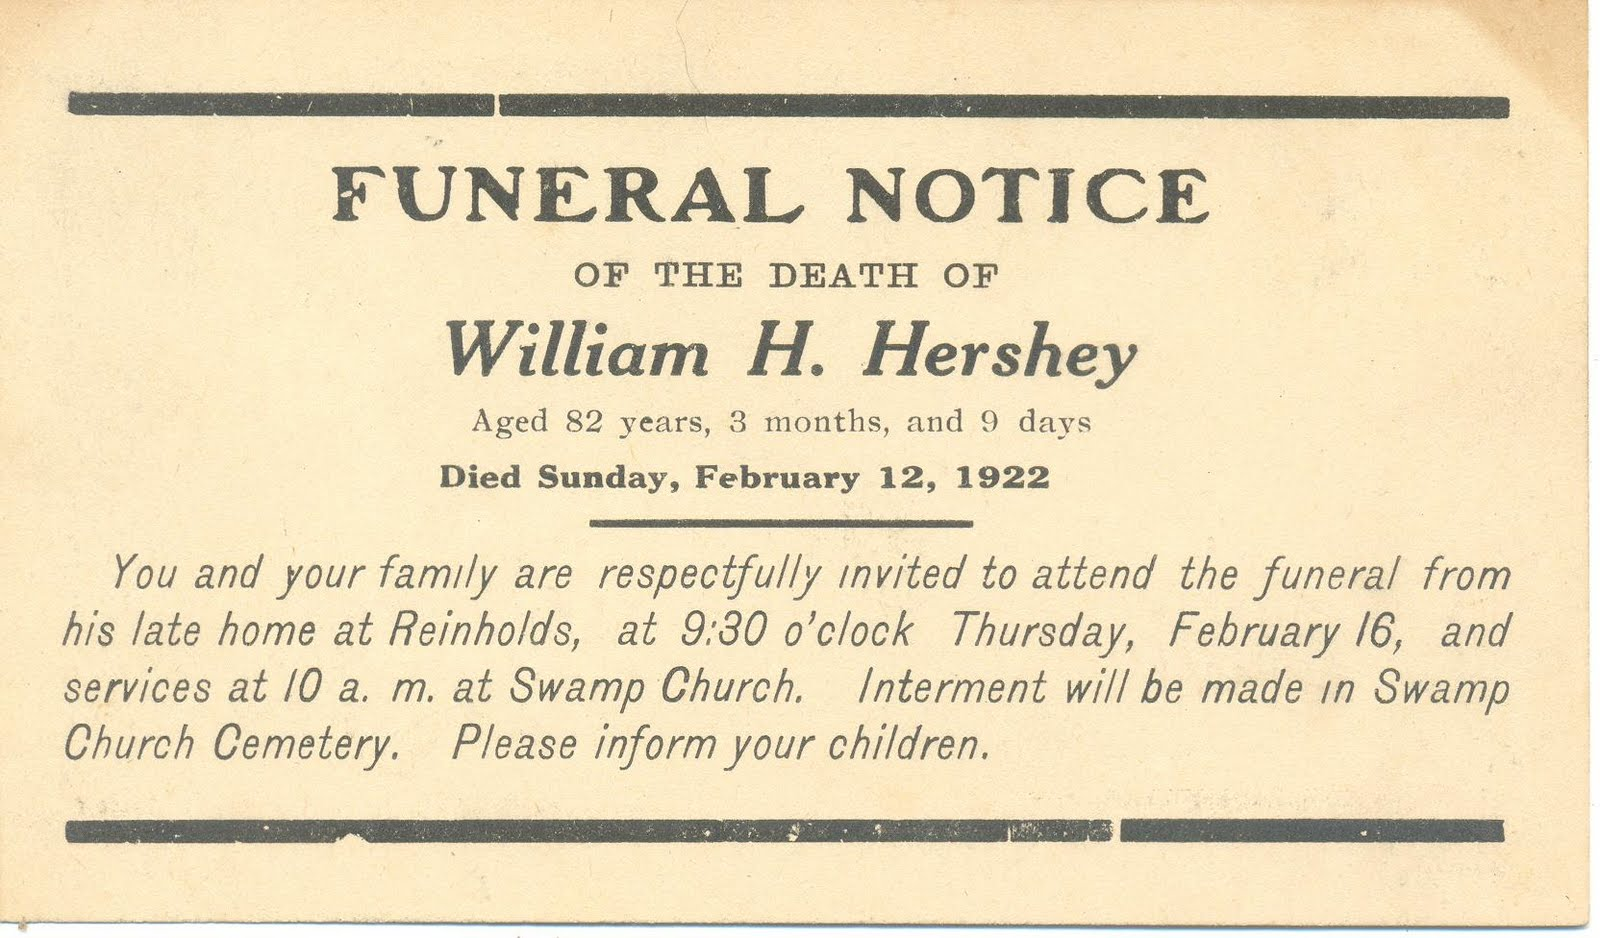 A Land Of Deepest Shade Death Memorabilia Part 4 Funeral Notices Hershey  Notice Death Memorabilia Part 4 Funeralhtml Memorial Service Invitation  Sample  Funeral Announcement Sample